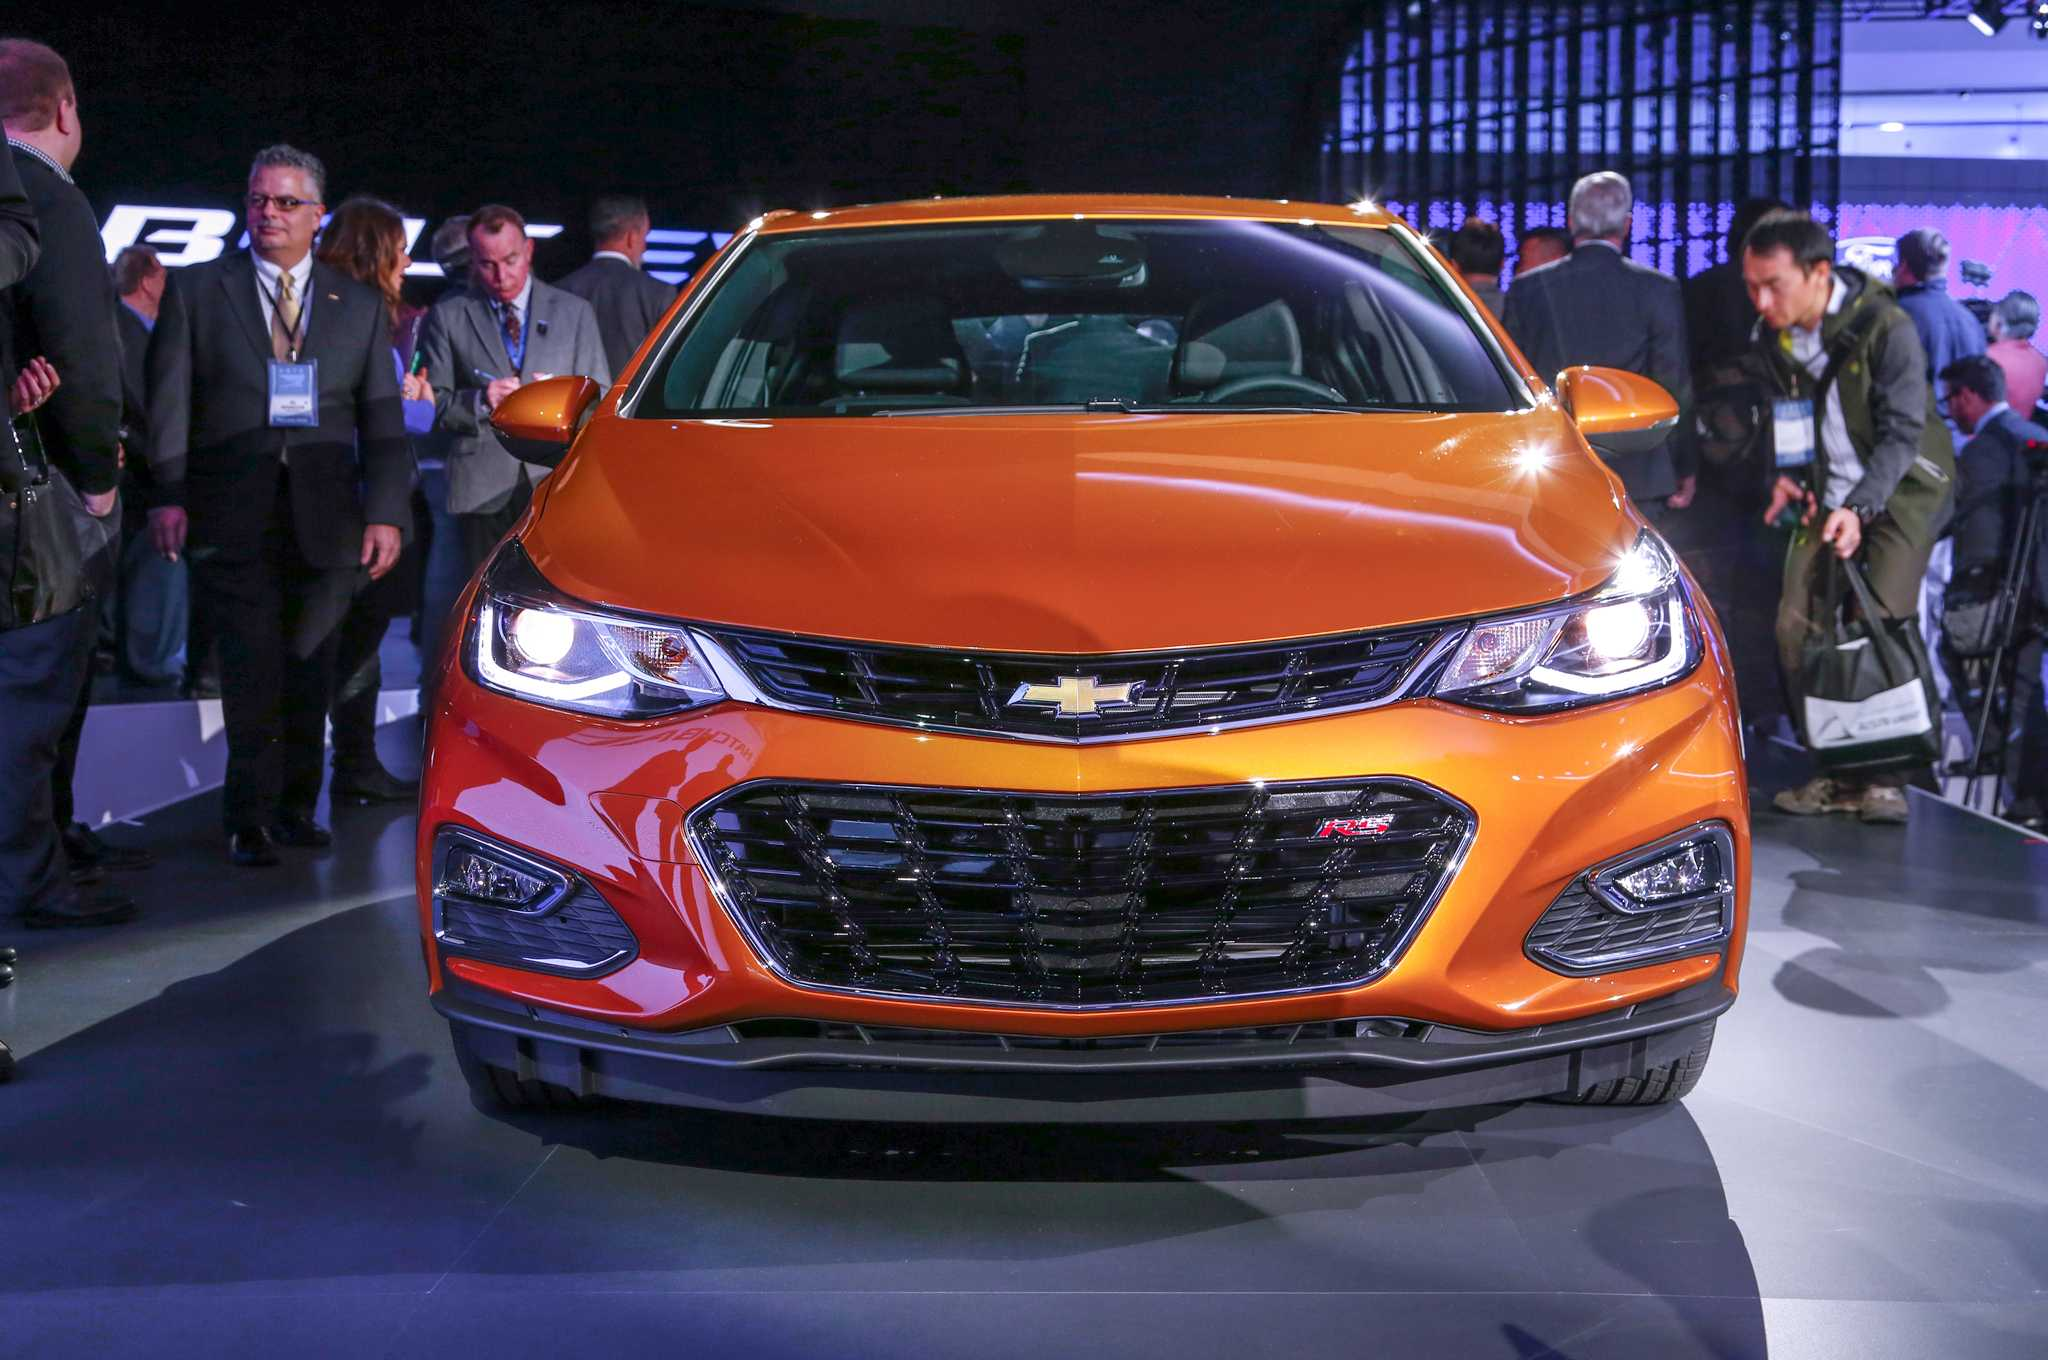 2018 Chevrolet Cruze Hatchback Unveiled with Diesel and Automatic Options